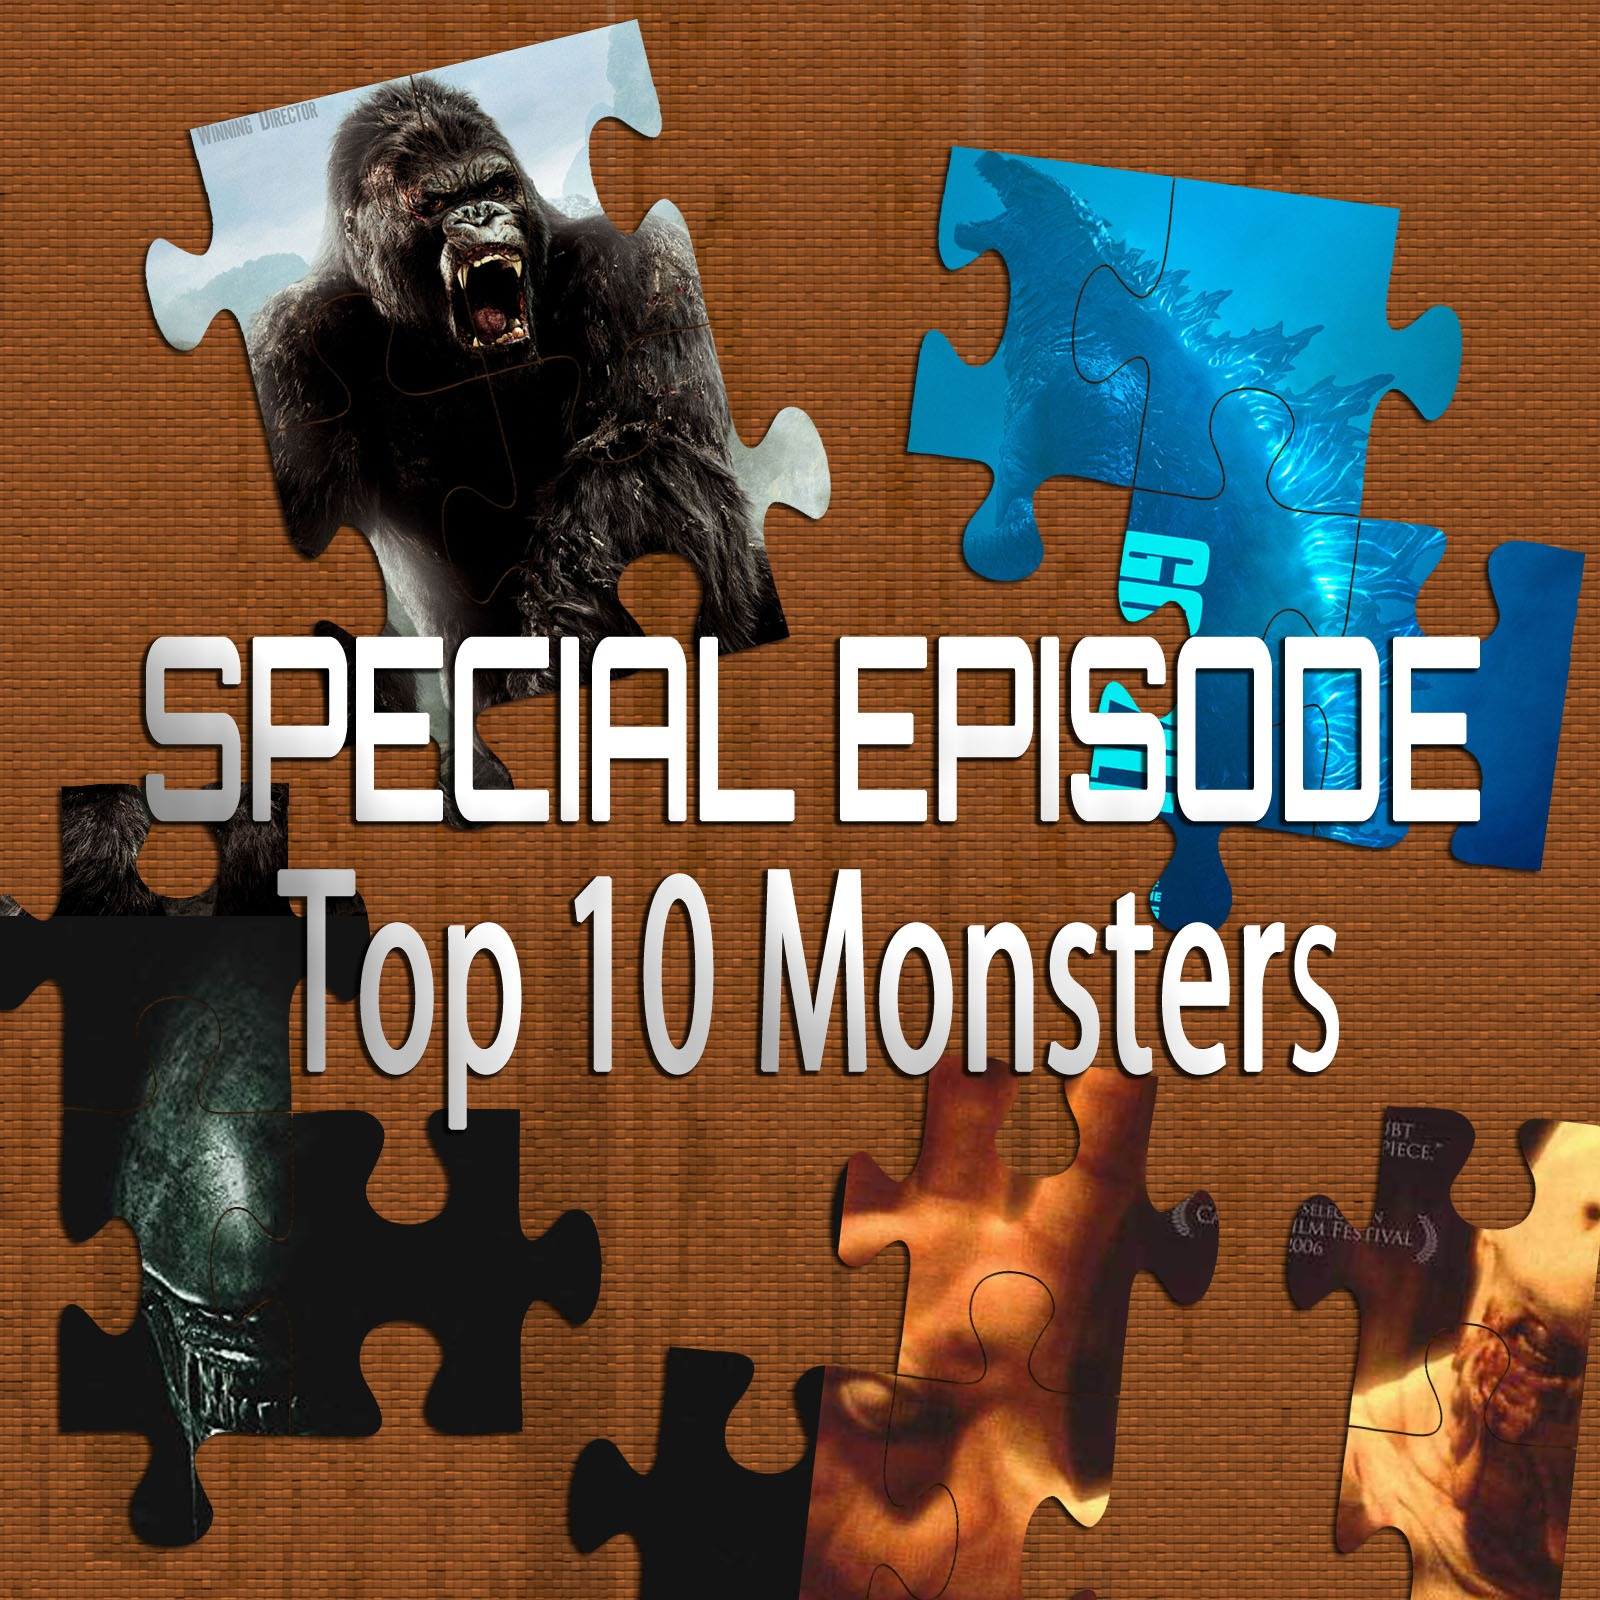 Top 10 Movie Monsters (Special Episode)